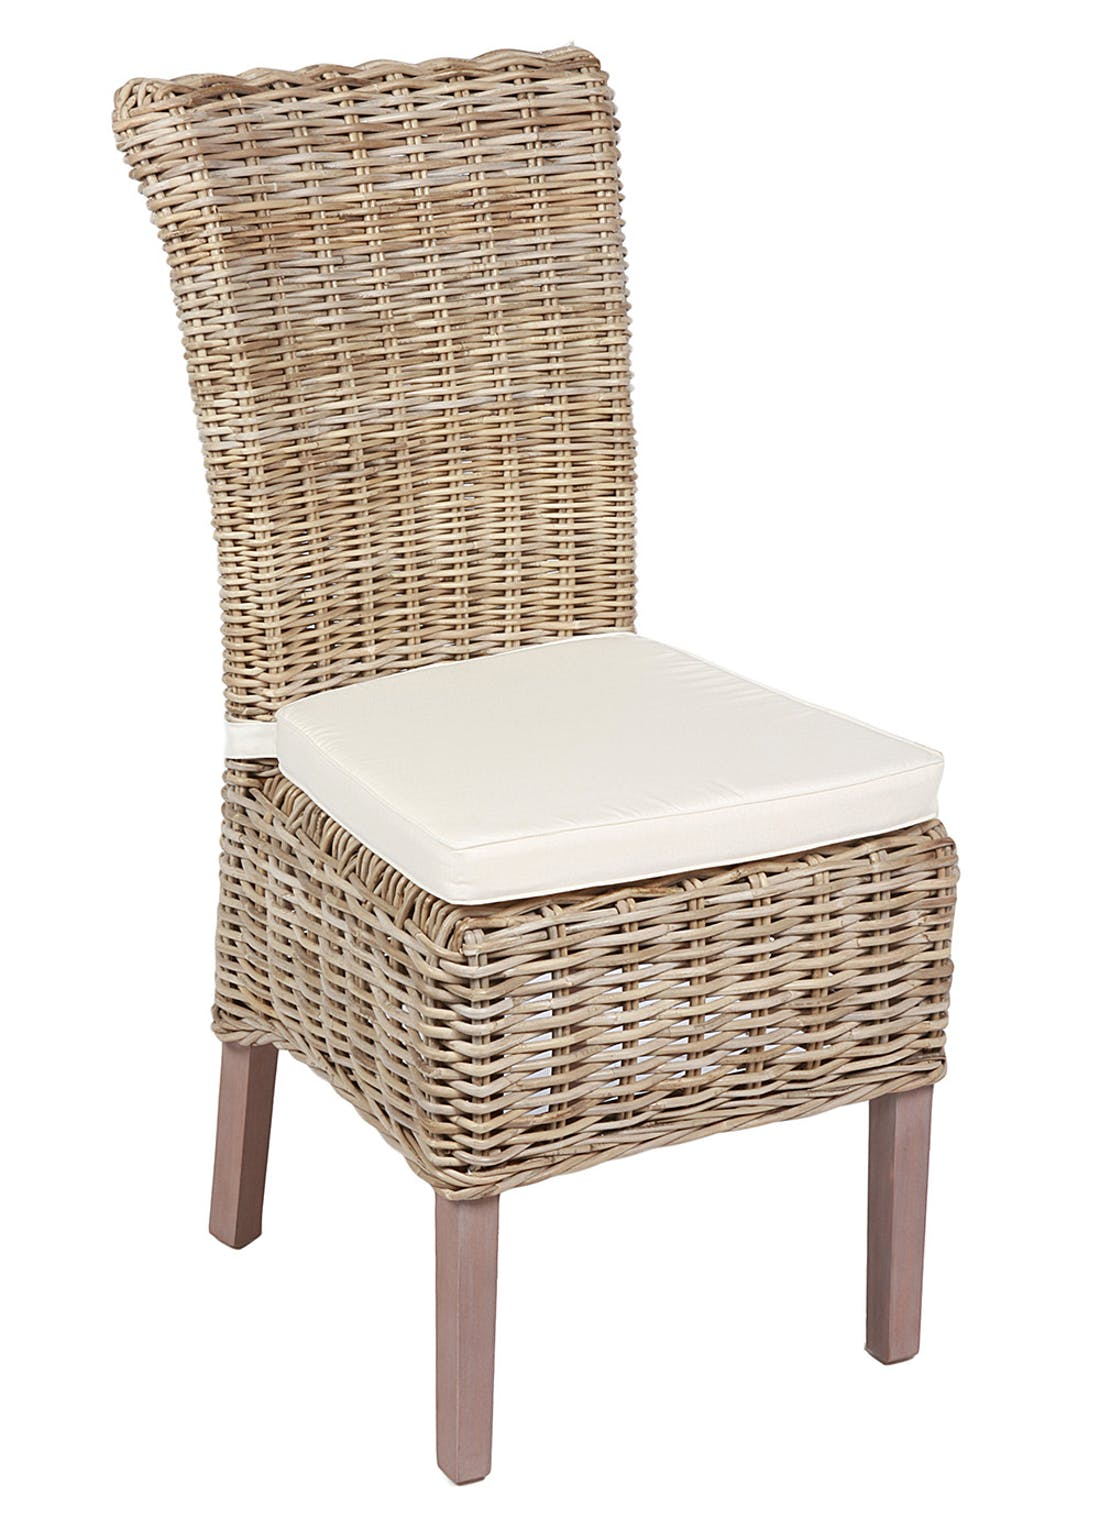 Interiors Direct Arundel 2 Pack Wicker Chairs with Cushion (105cm x 60cm x 46cm)